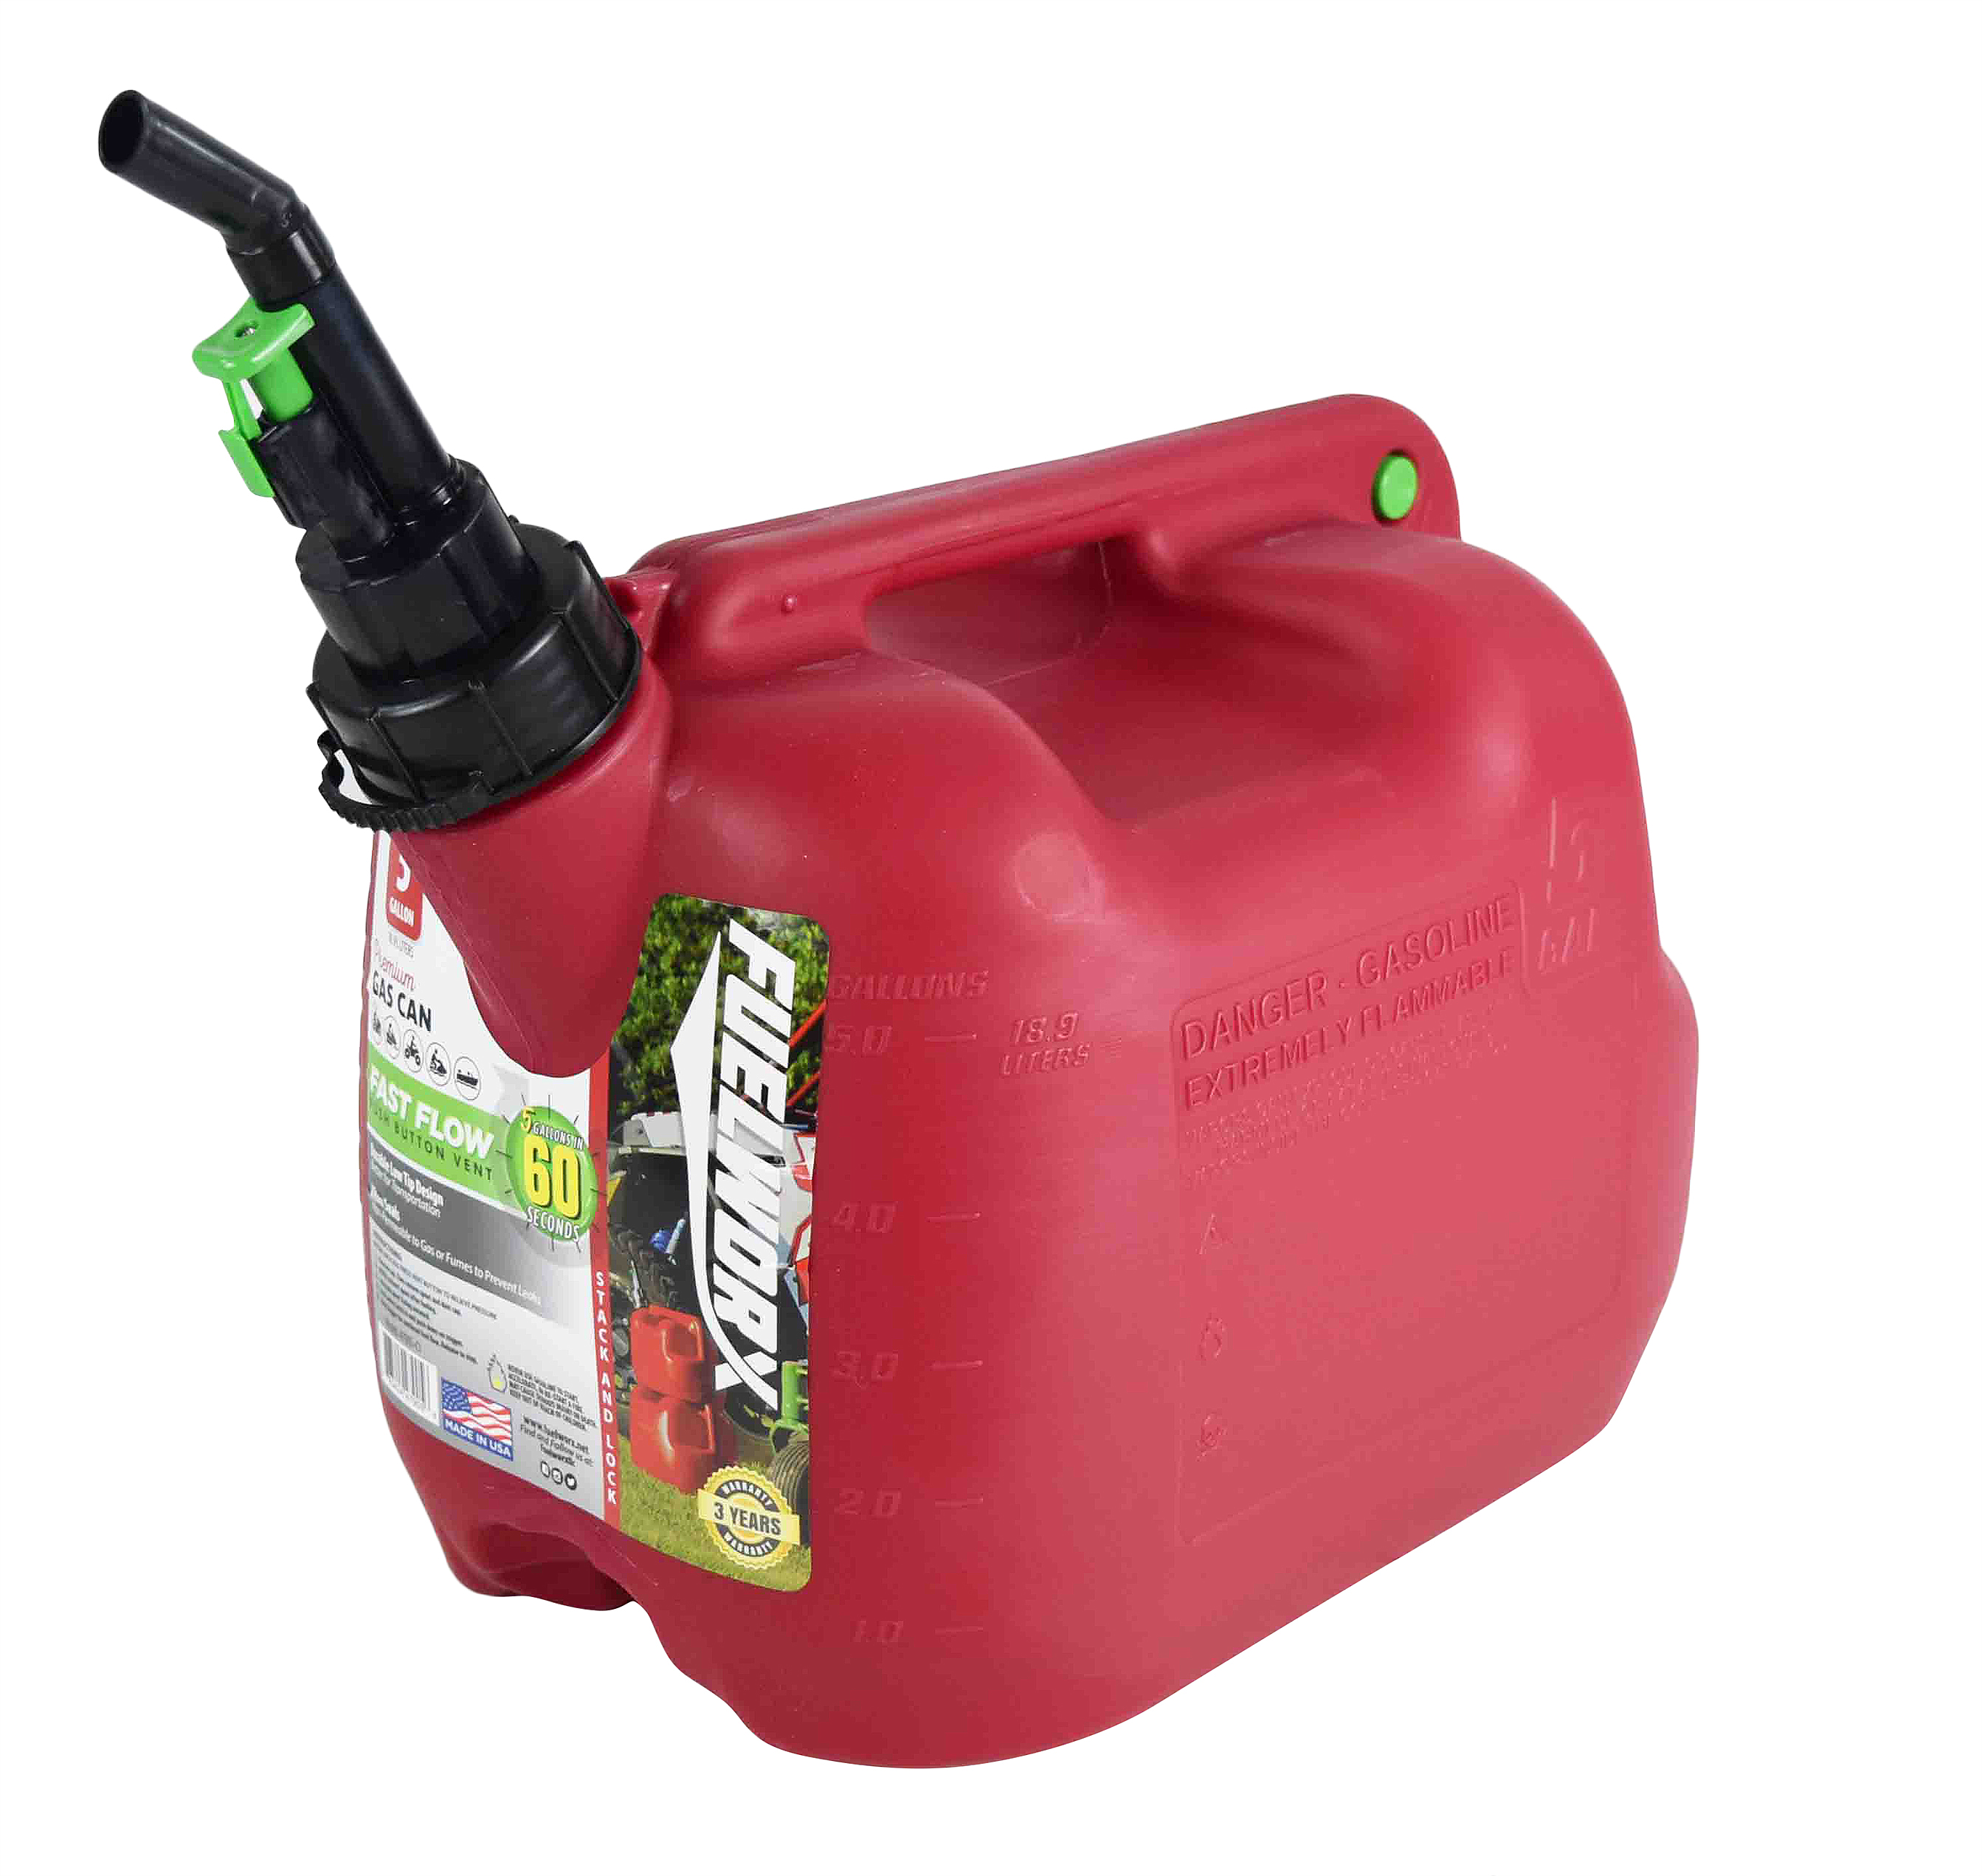 Fuelworx-Stackable-Easy-Pour-5-Gal-Vented-Fuel-Can-Made-in-USA-CARB-Compliant-image-3